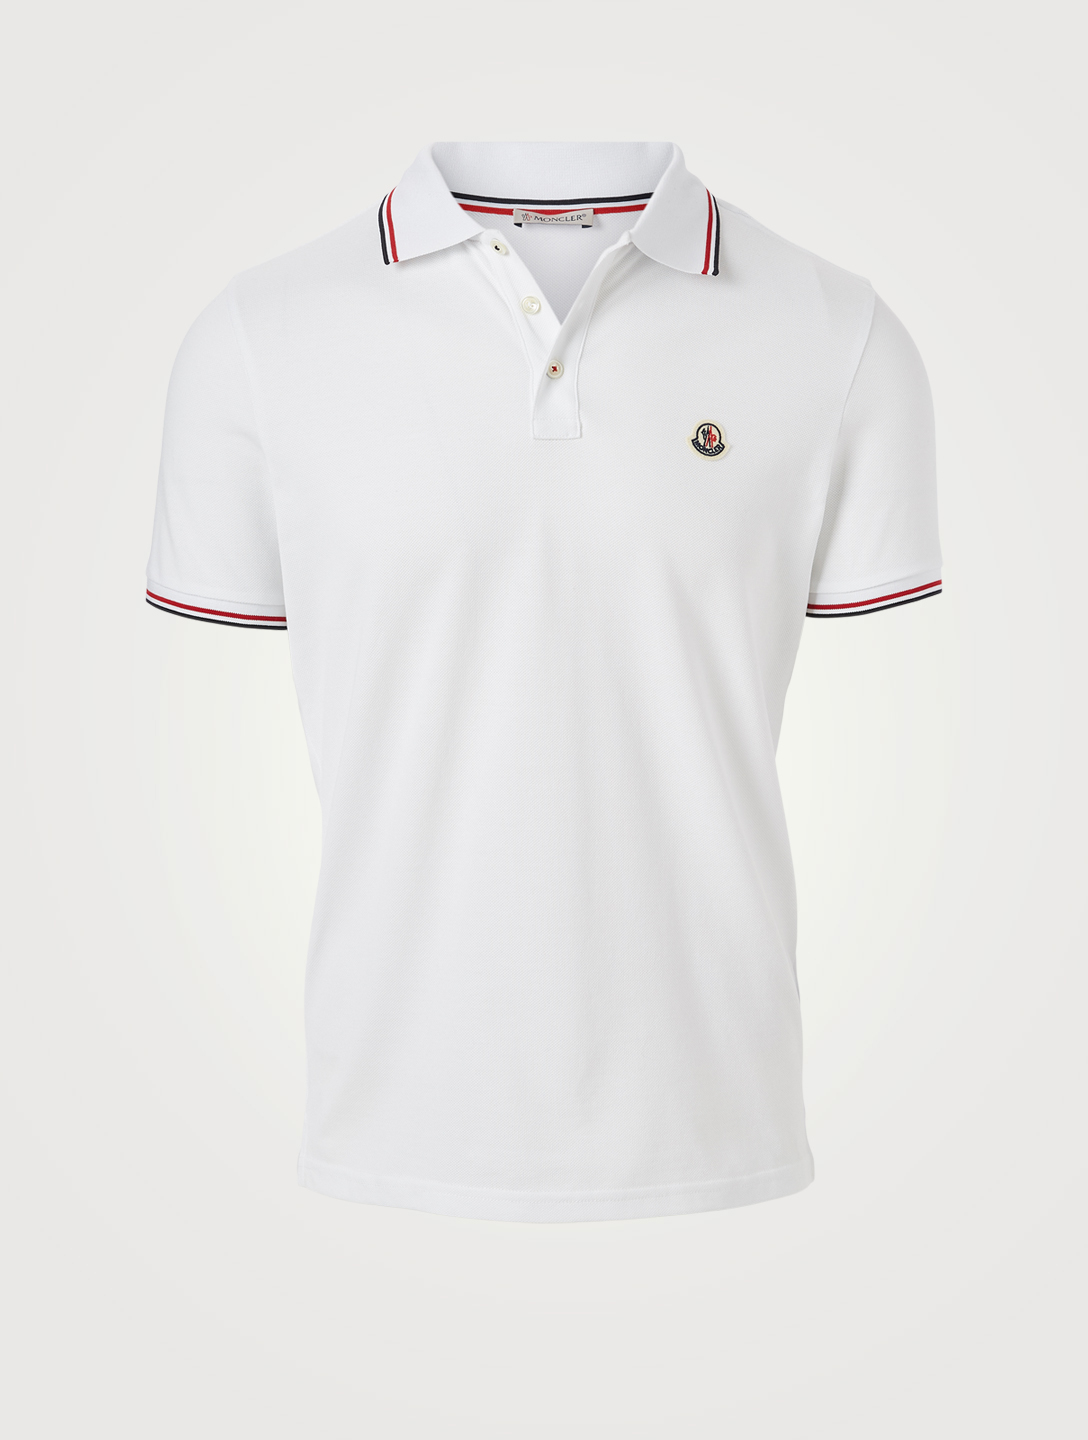 MONCLER Cotton Short-Sleeve Polo Shirt Men's White